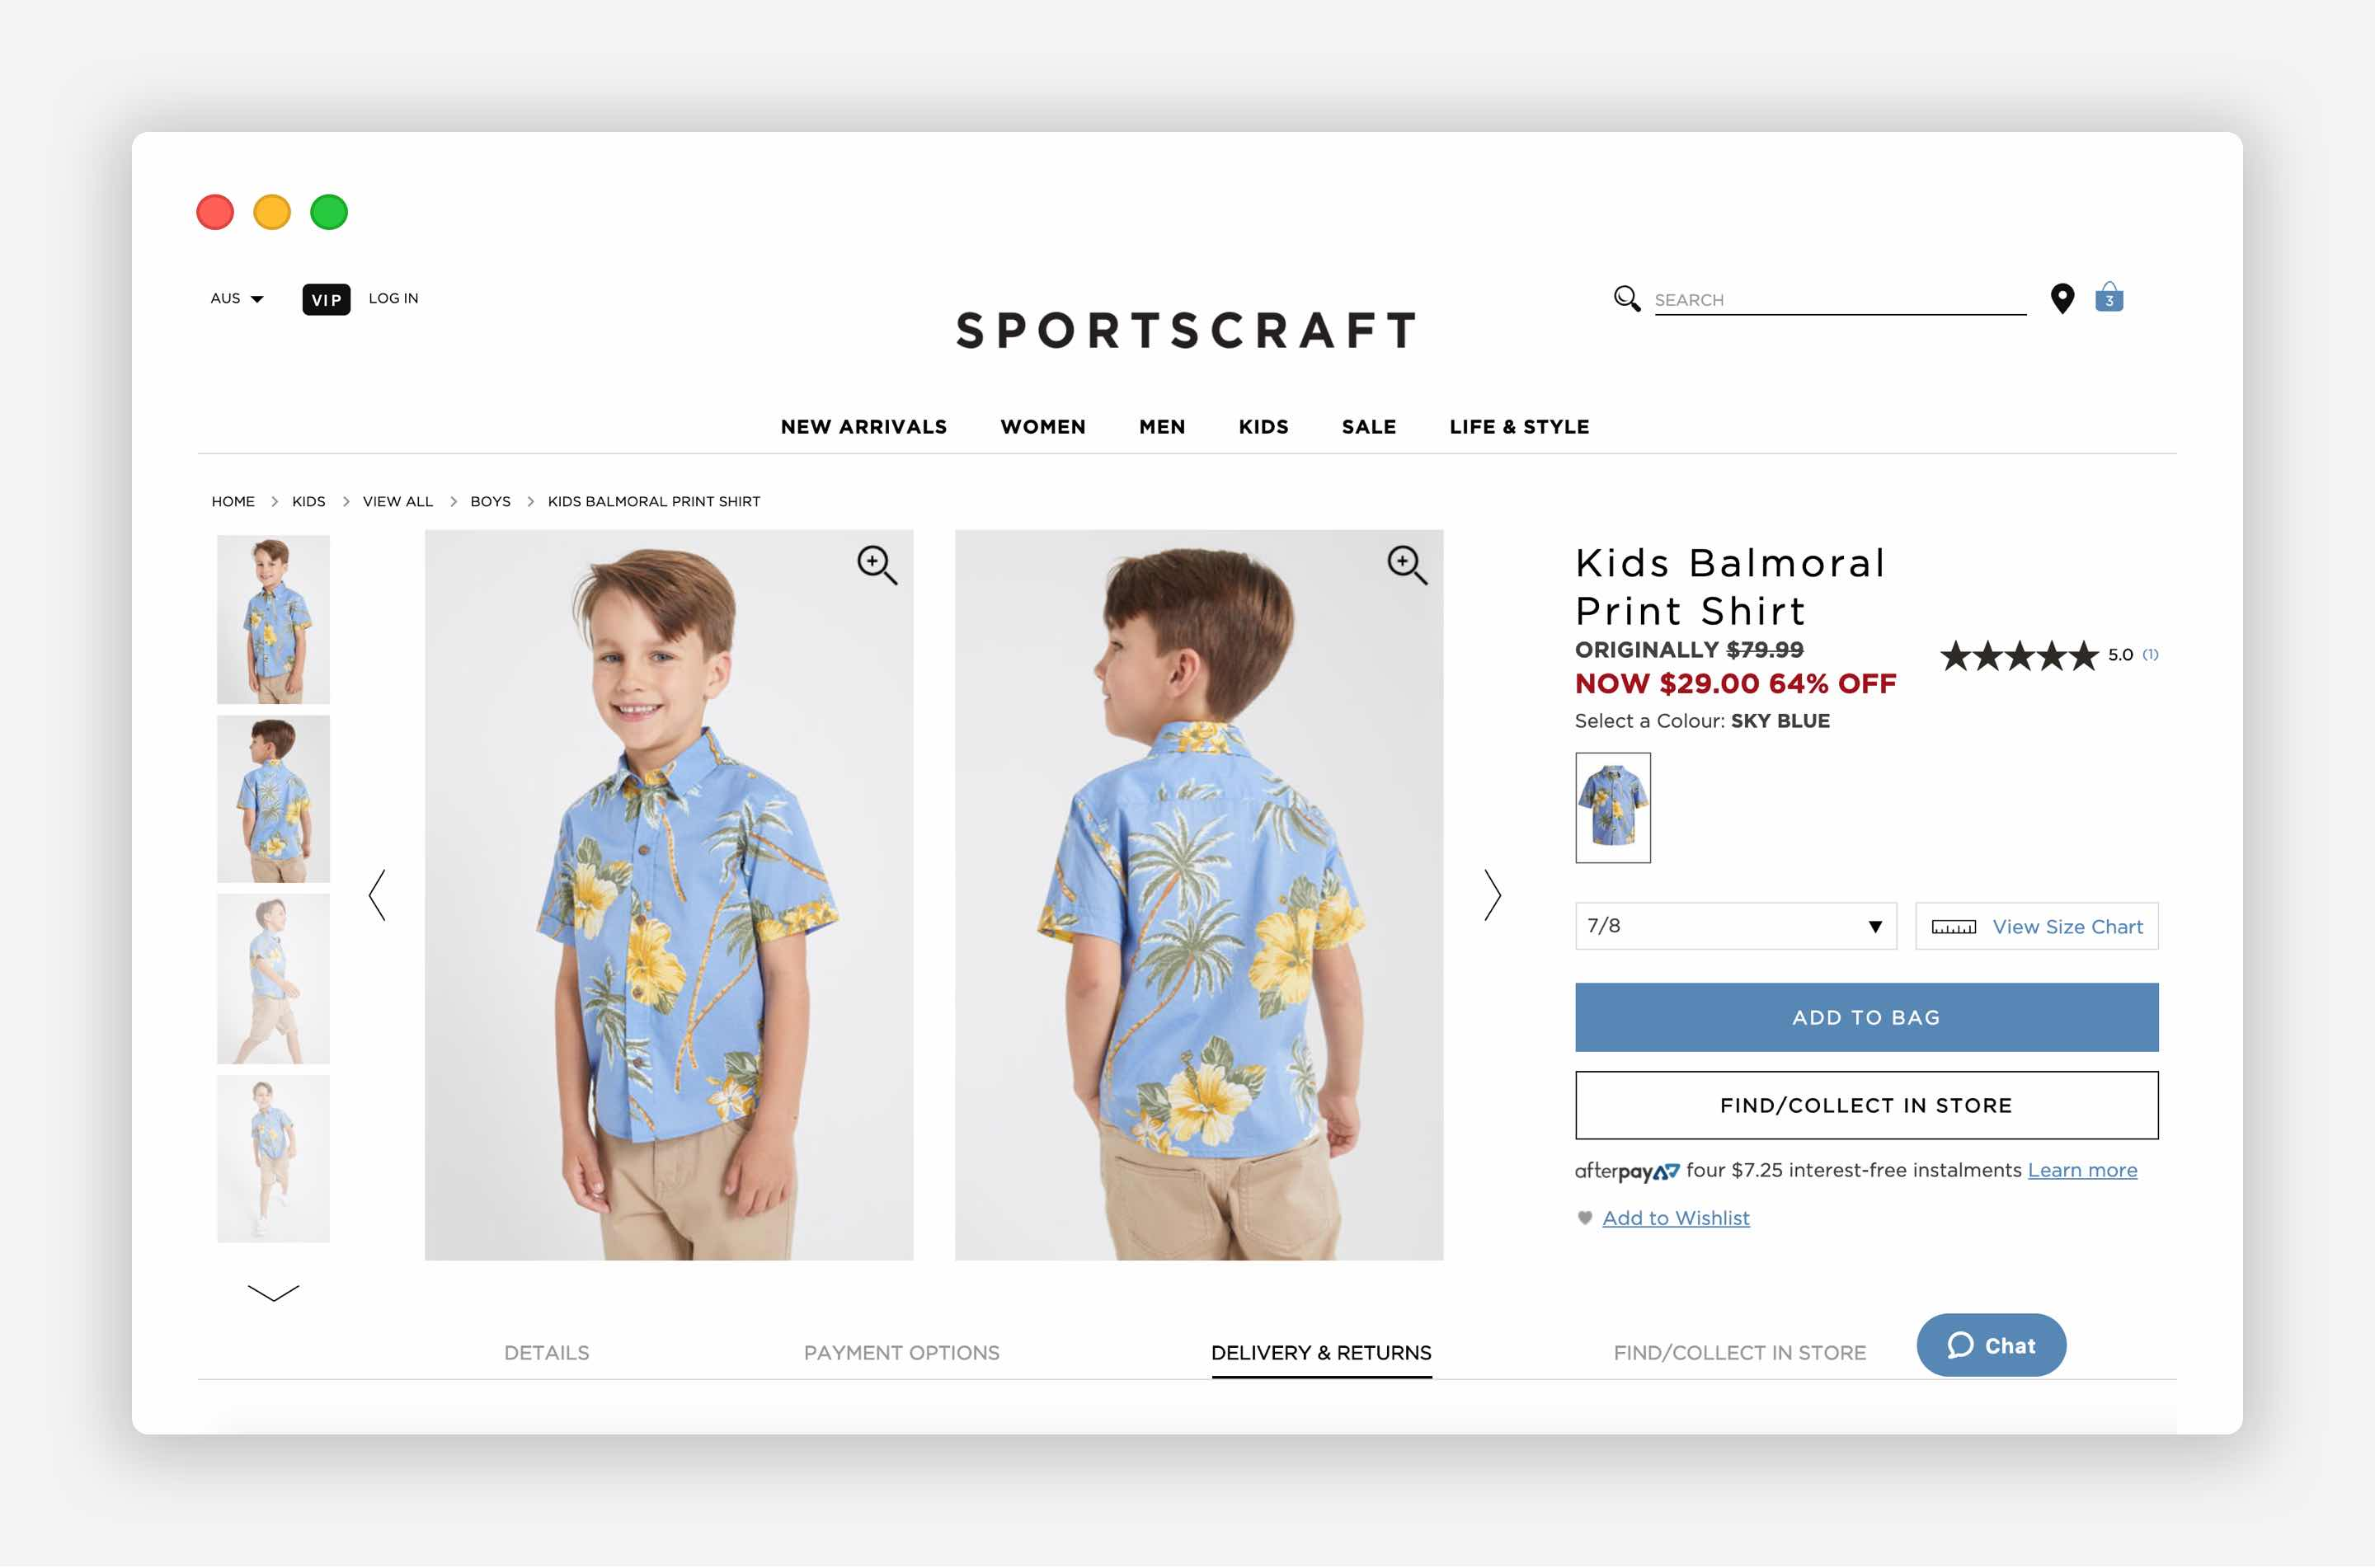 Product title on the product page. The Sportscraft example